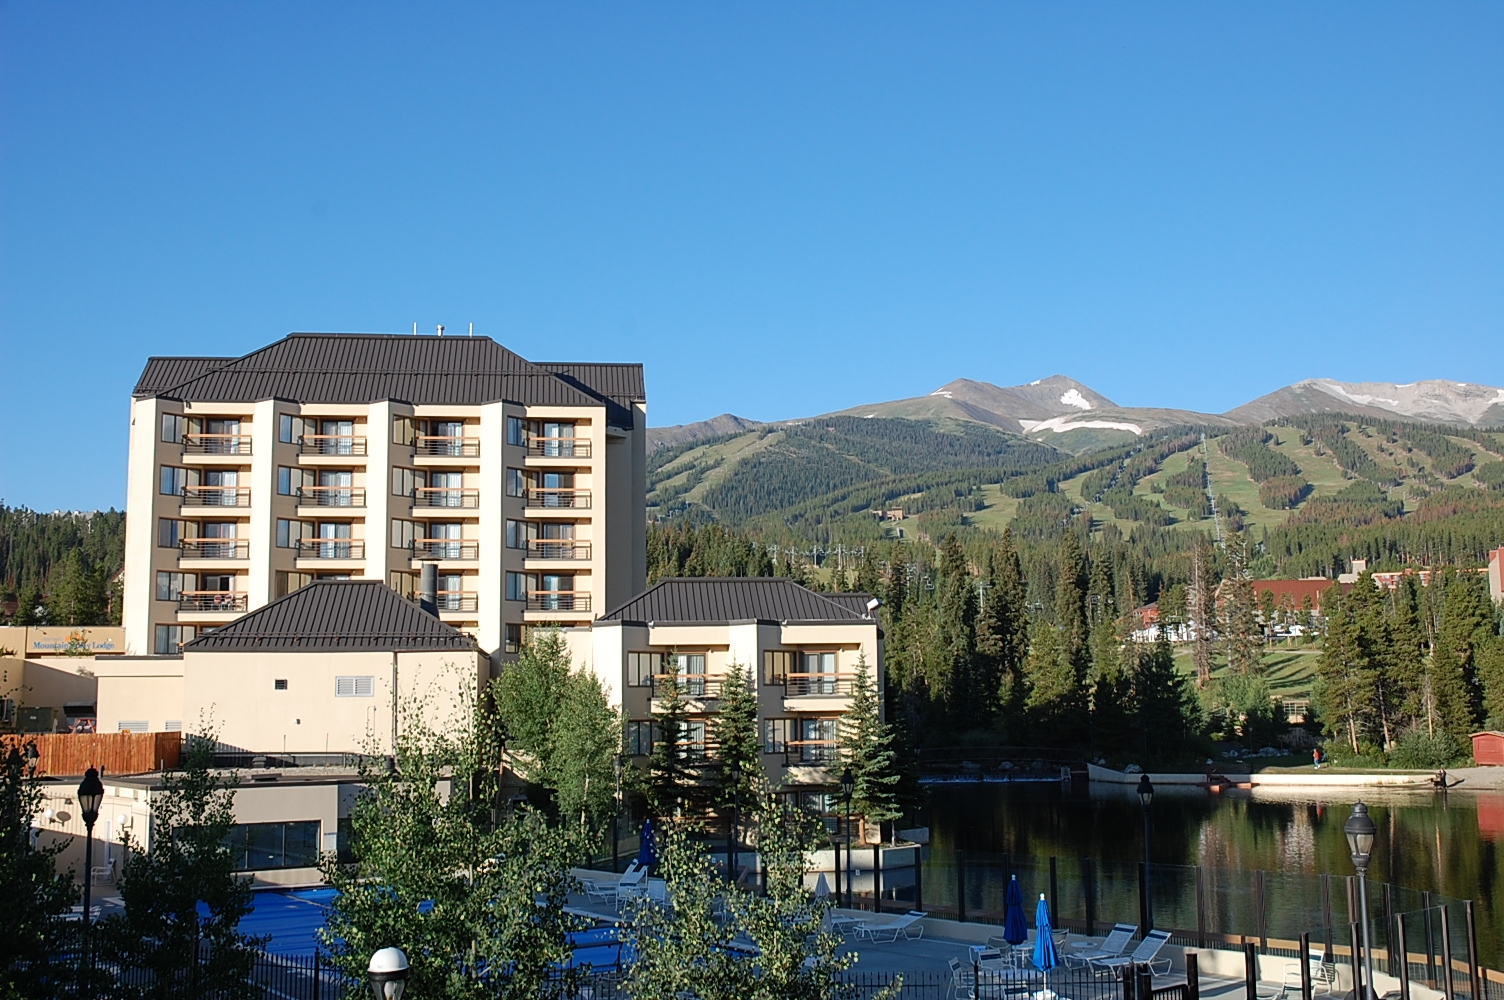 summit county real estate Condo Sales Up 33% in Summit County, Colorado